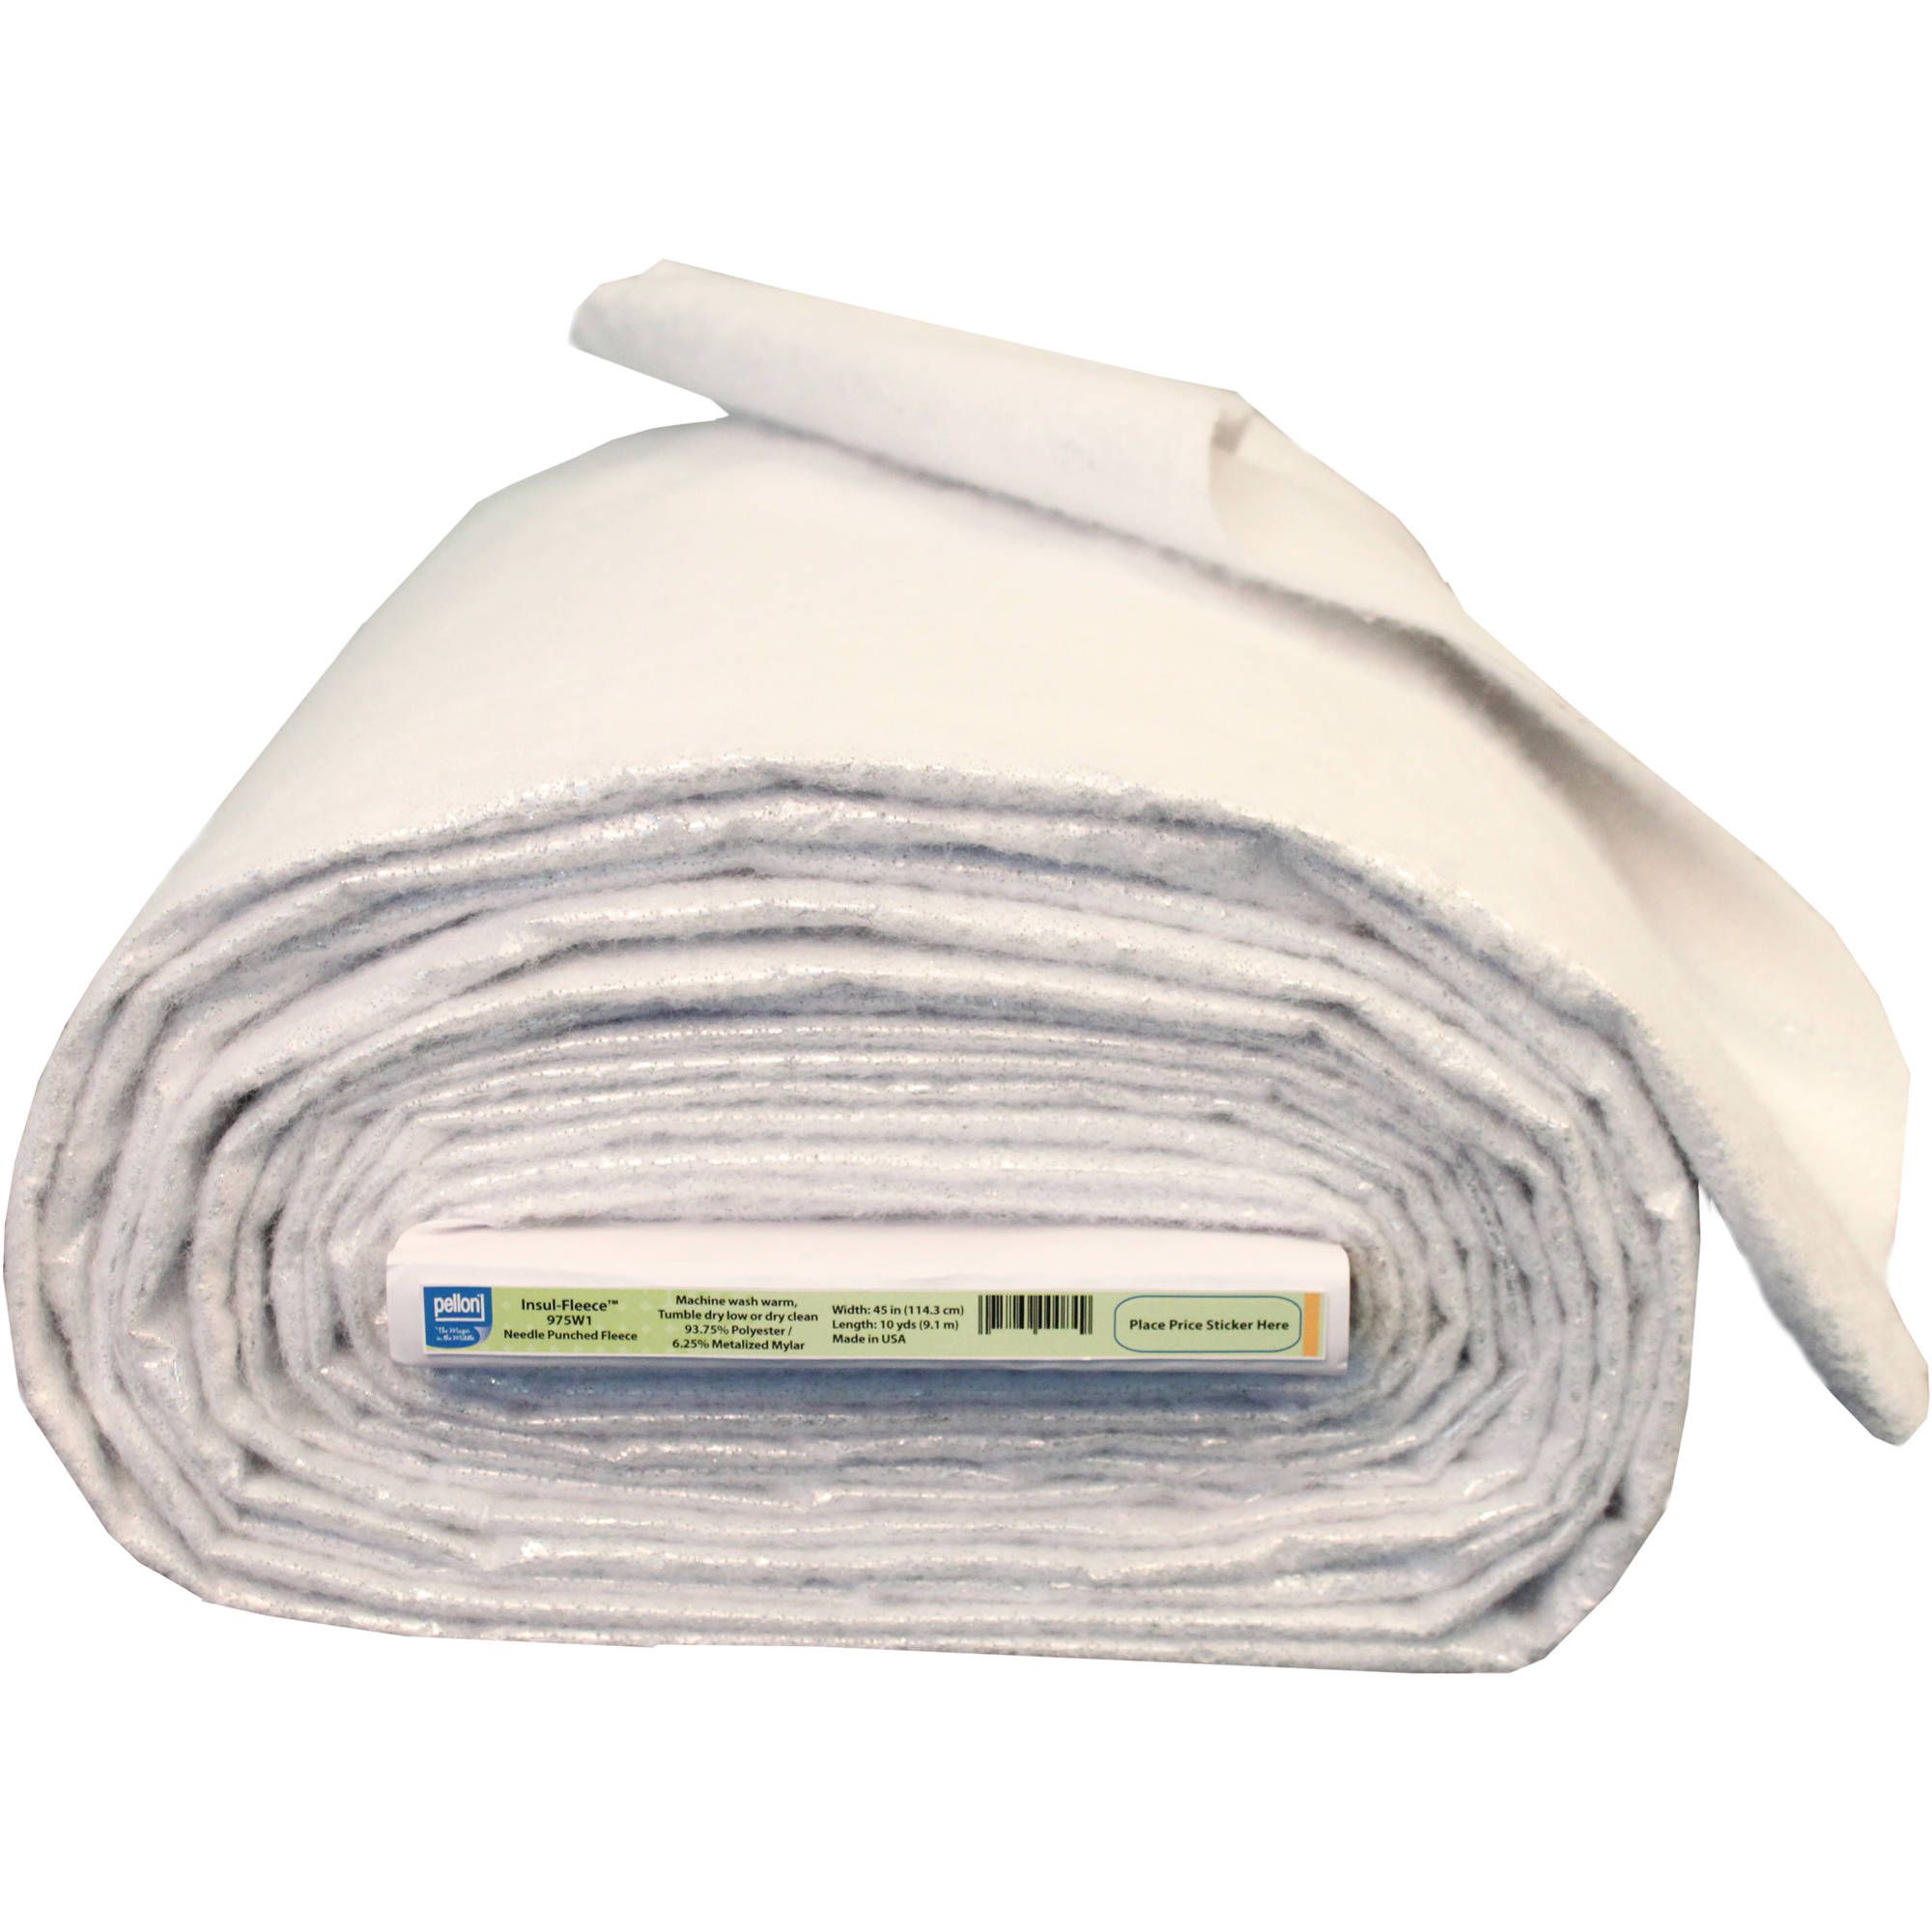 "Pellon Insul-Fleece, 45"" x 10 Yard Bolt"